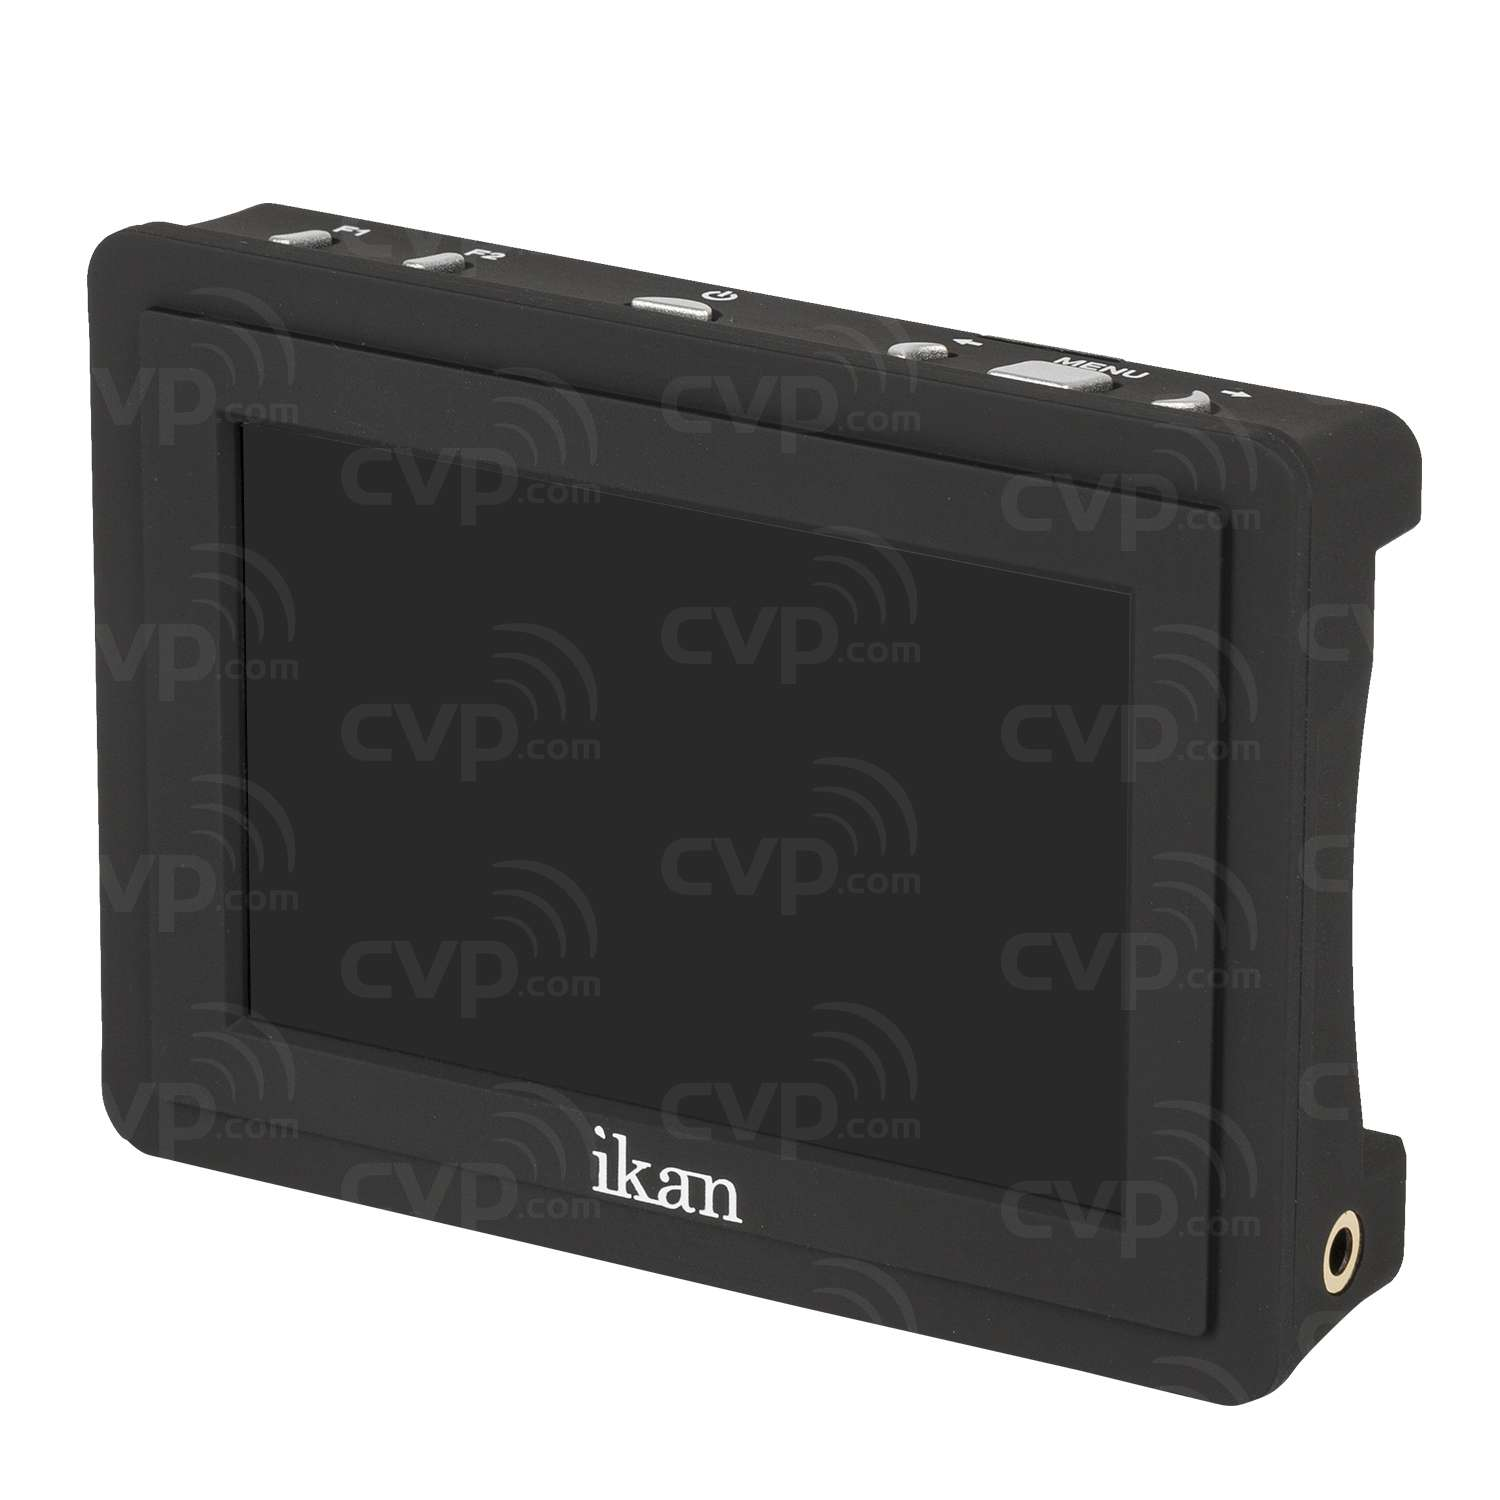 Ikan (VL35) 3.5 Inch 4K Supporting HDMI Field Monitor with